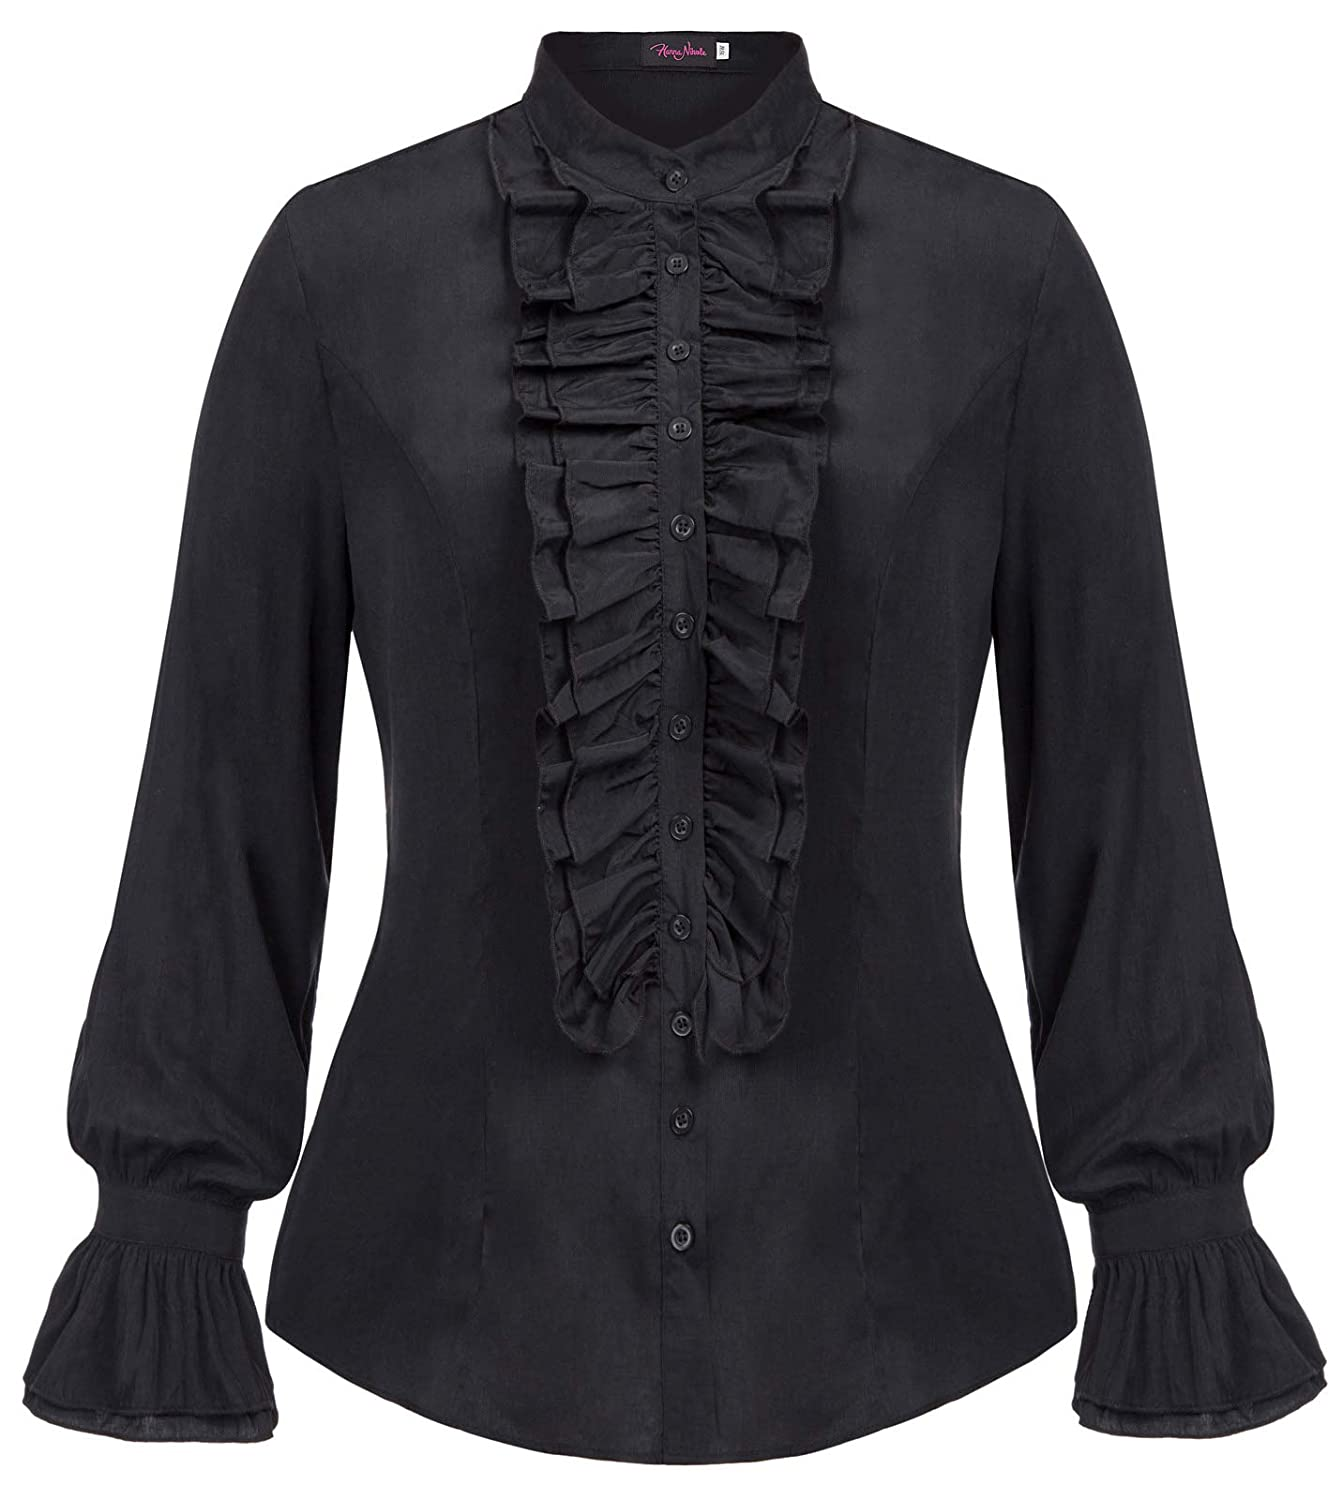 Steampunk Tops | Blouses, Shirts Hanna Nikole Women Plus Size Victorian Gothic Ruffled Lotus Shirt Blouse Tops $23.99 AT vintagedancer.com